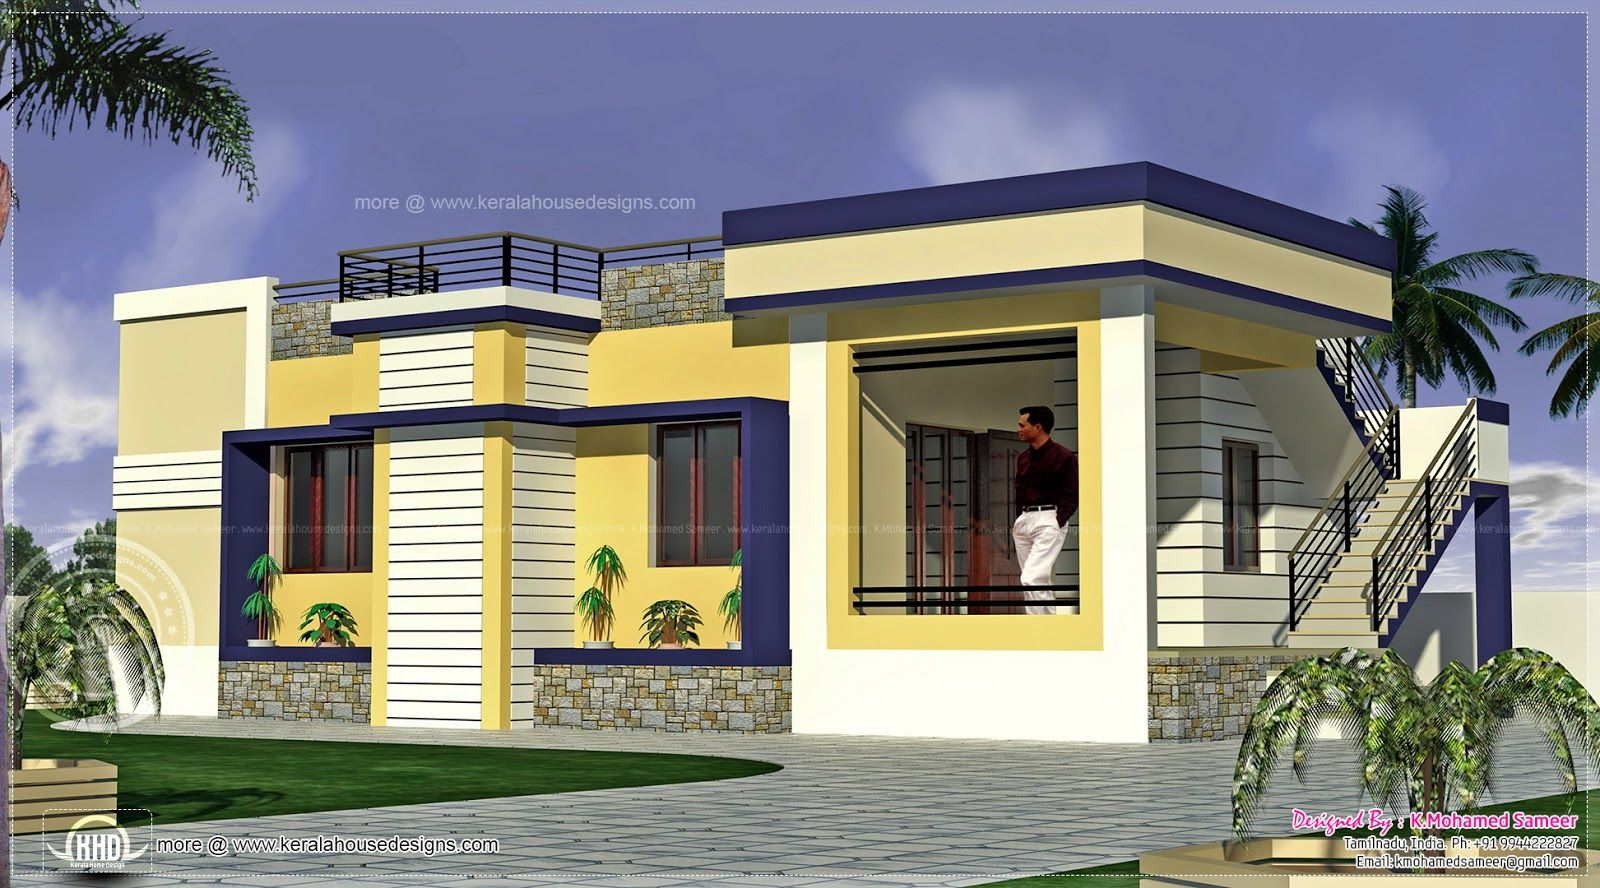 Tamil nadu house plans 1000 sq ft l Indian model house plan design